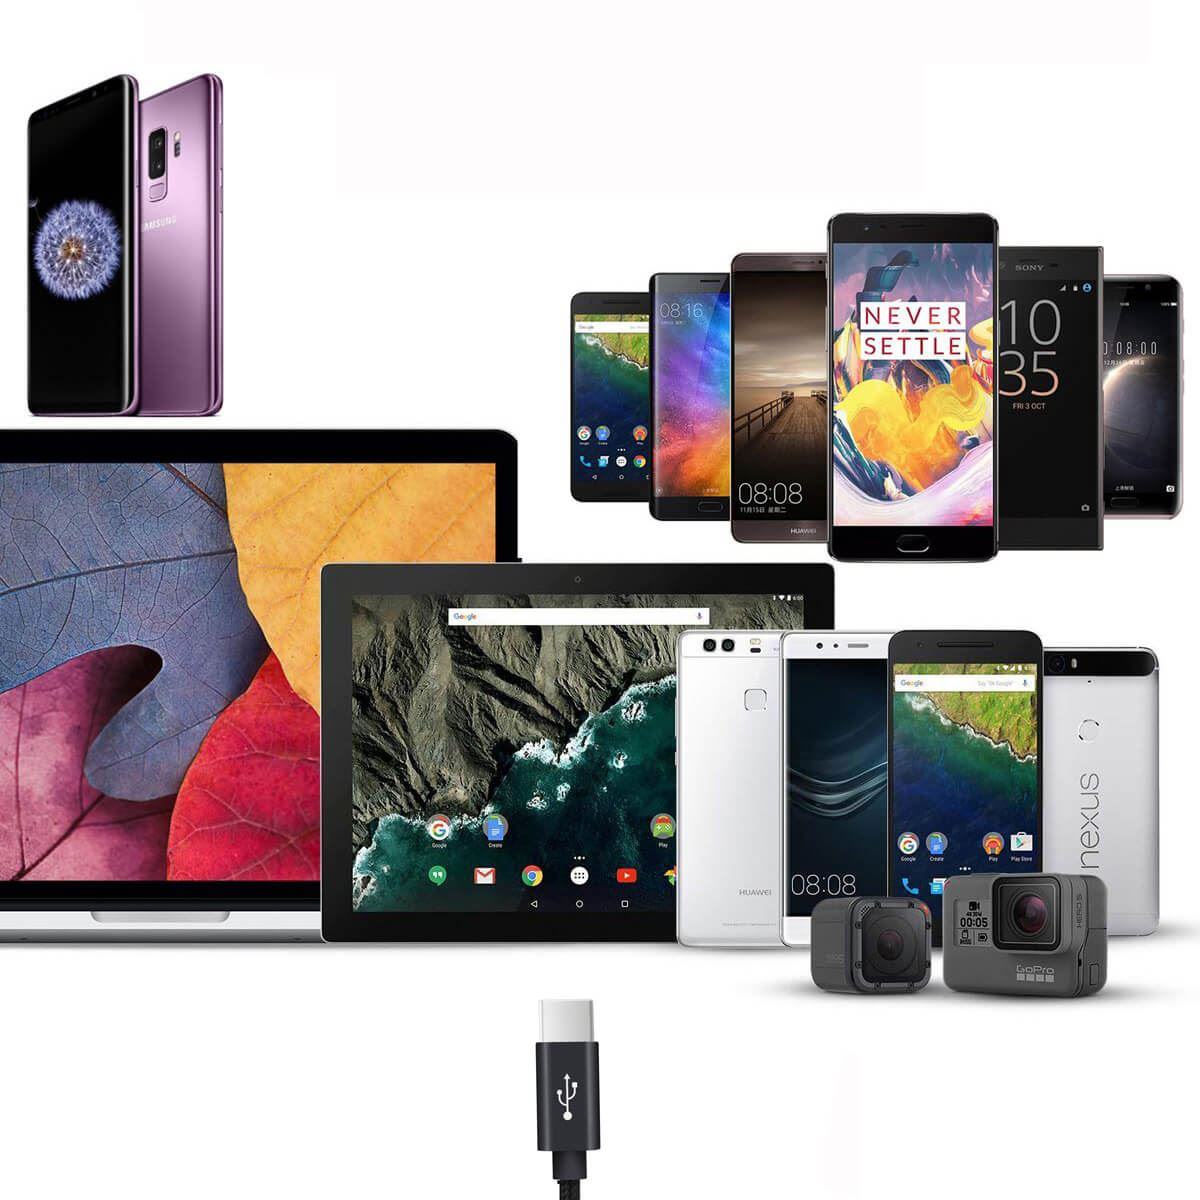 Type-C-USB-C-Sync-Fast-Charger-Charging-Cable-Samsung-Galaxy-S10-S9-S8-Plus-Lite thumbnail 10